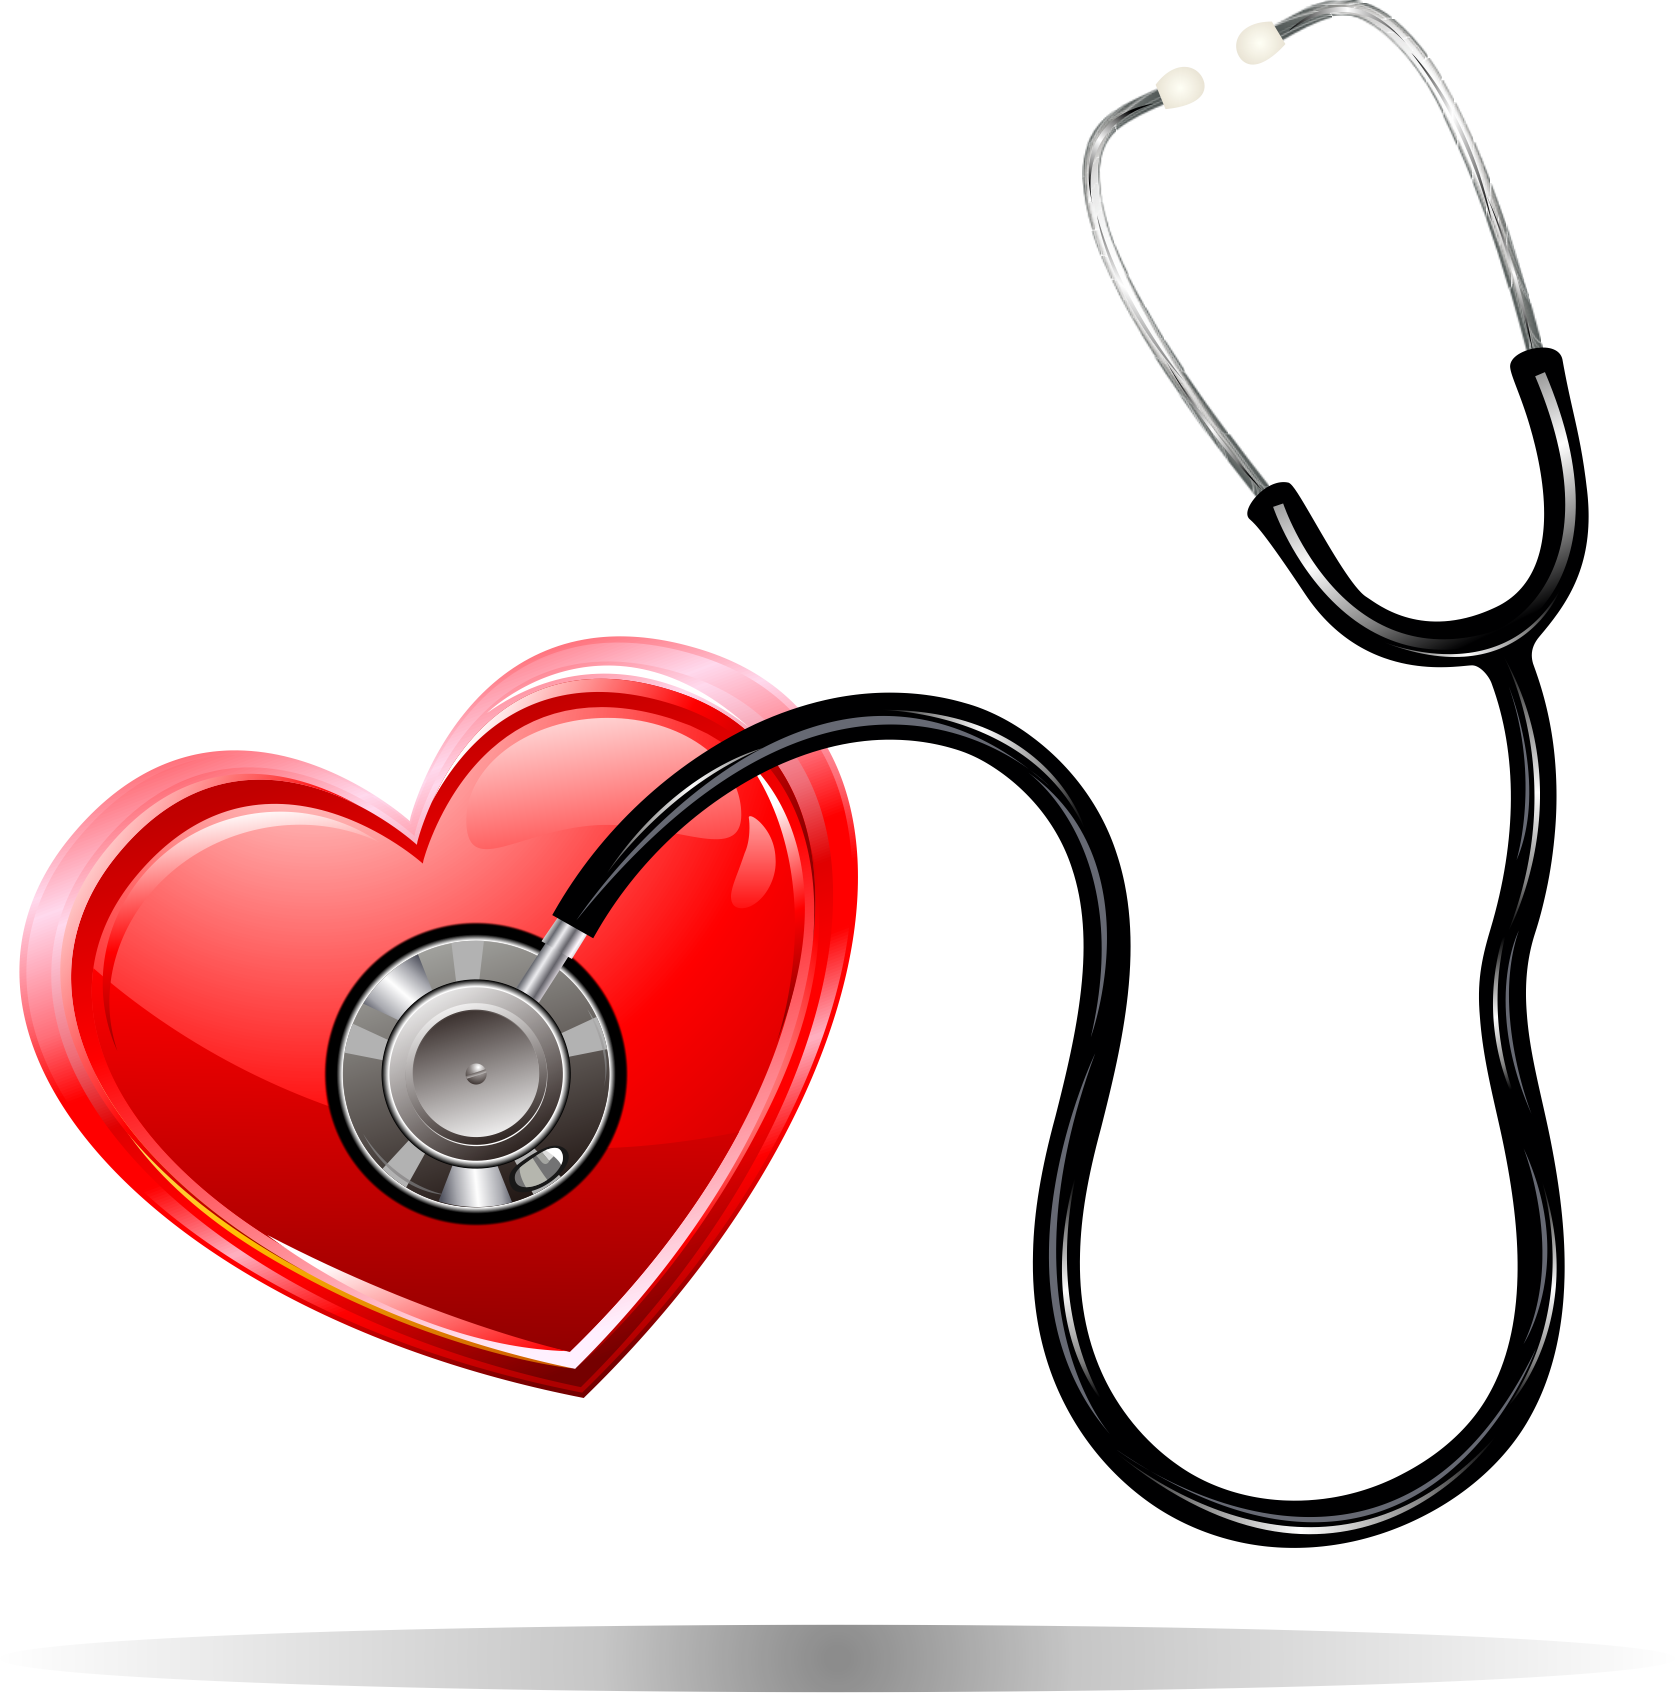 Stethoscope clipart vector heart image library download Medicine Euclidean vector Heart Element - Listen to the heart of the ... image library download